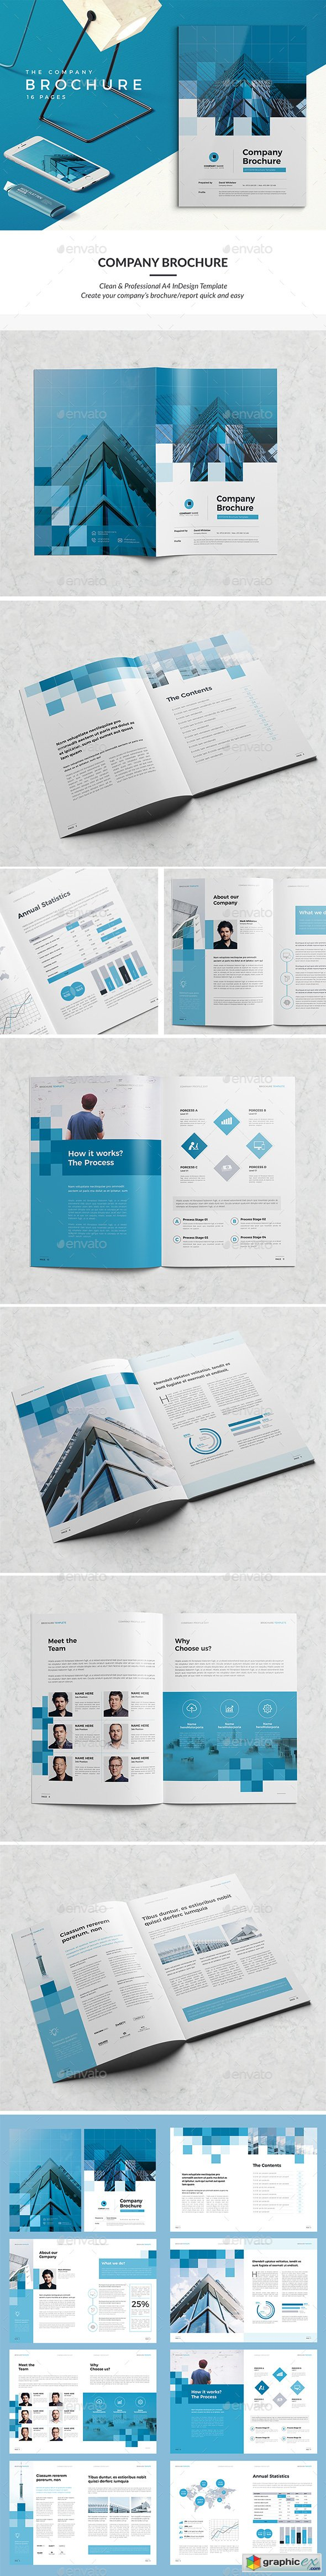 Modern Company Brochure 16 Pages